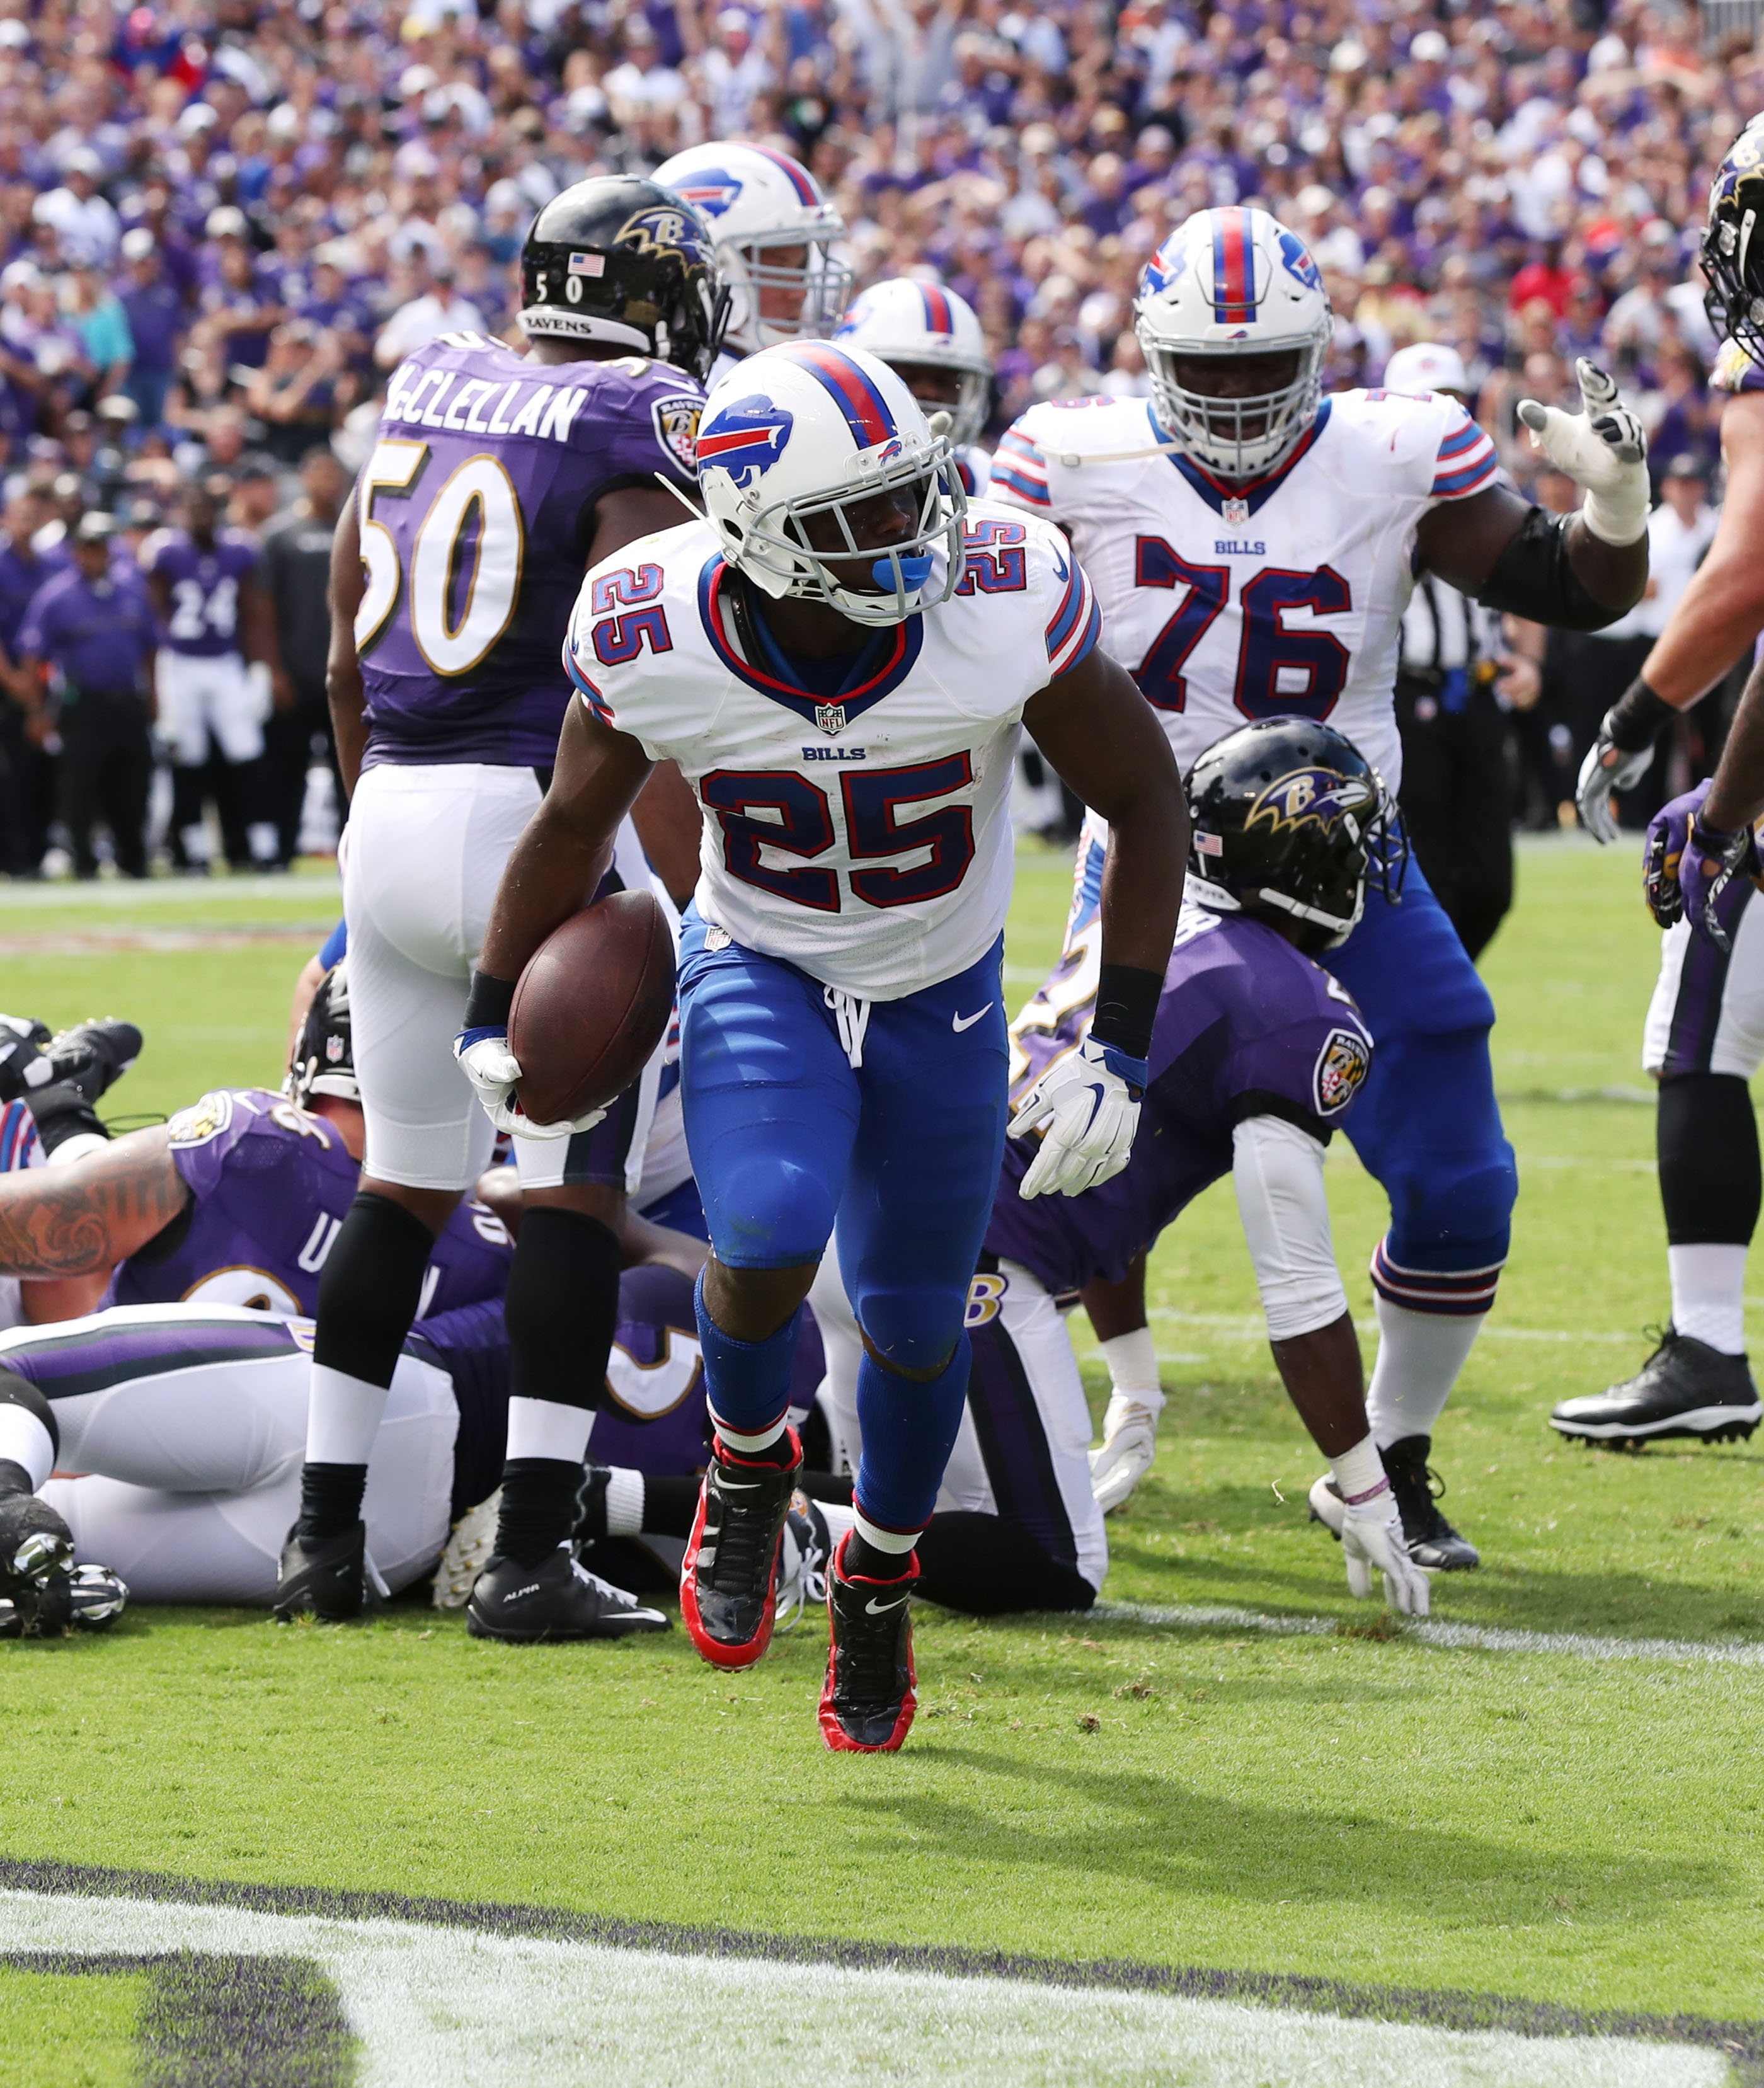 Buffalo Bills running back LeSean McCoy (25) scores a touchdown in the second quarter at M&T Bank Stadium in Baltimore,MD on Sunday, Sept. 11, 2016.  (James P. McCoy/ Buffalo News)